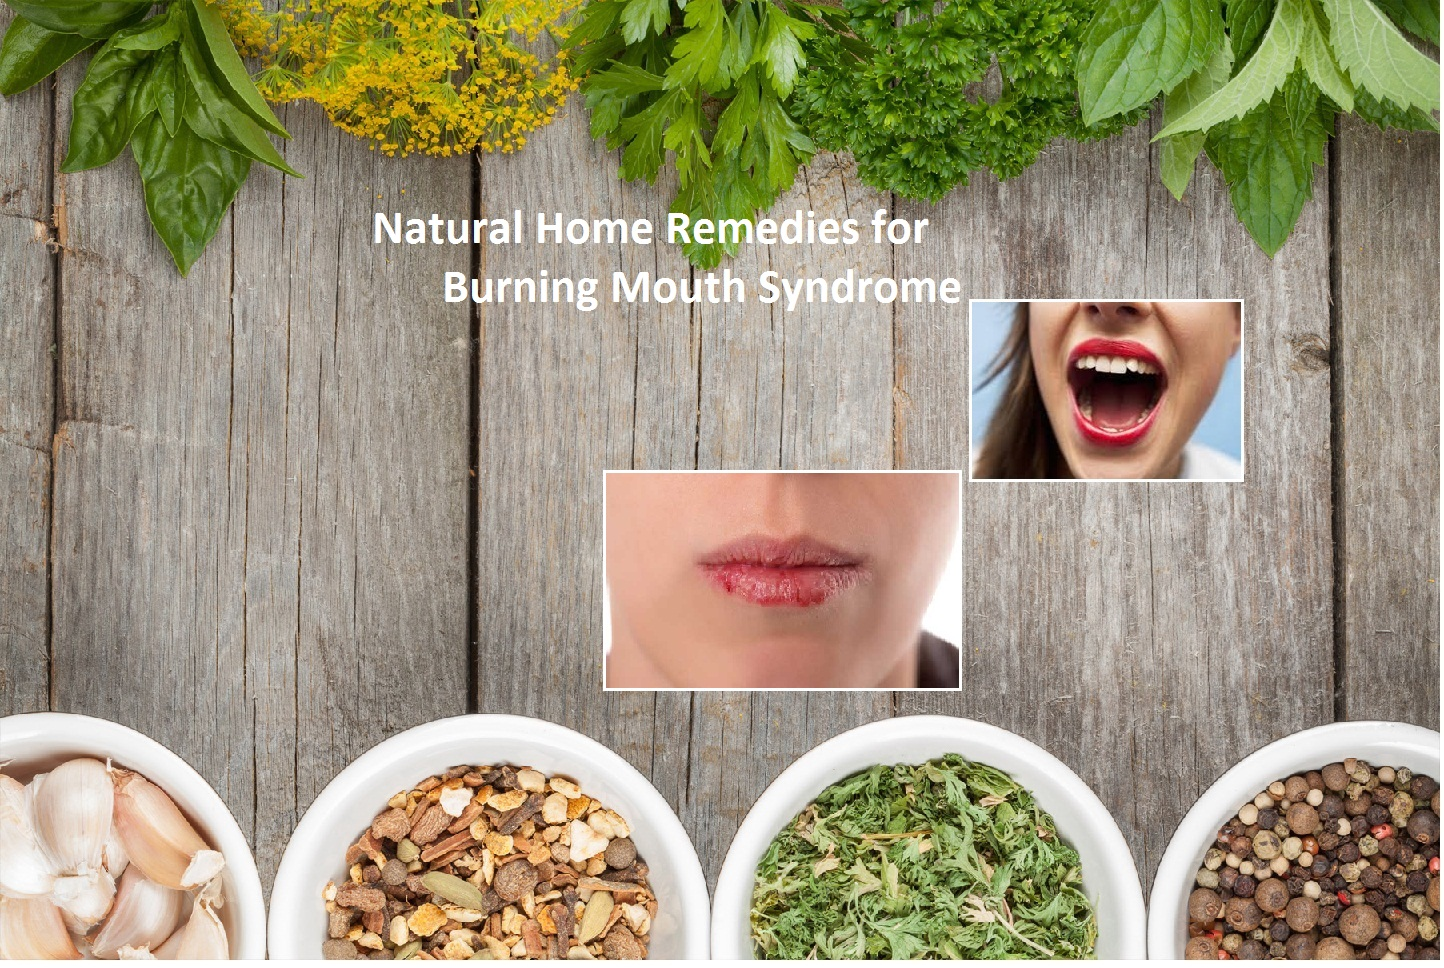 Natural-Home-Remedies-for-Burning-Mouth-Syndrome